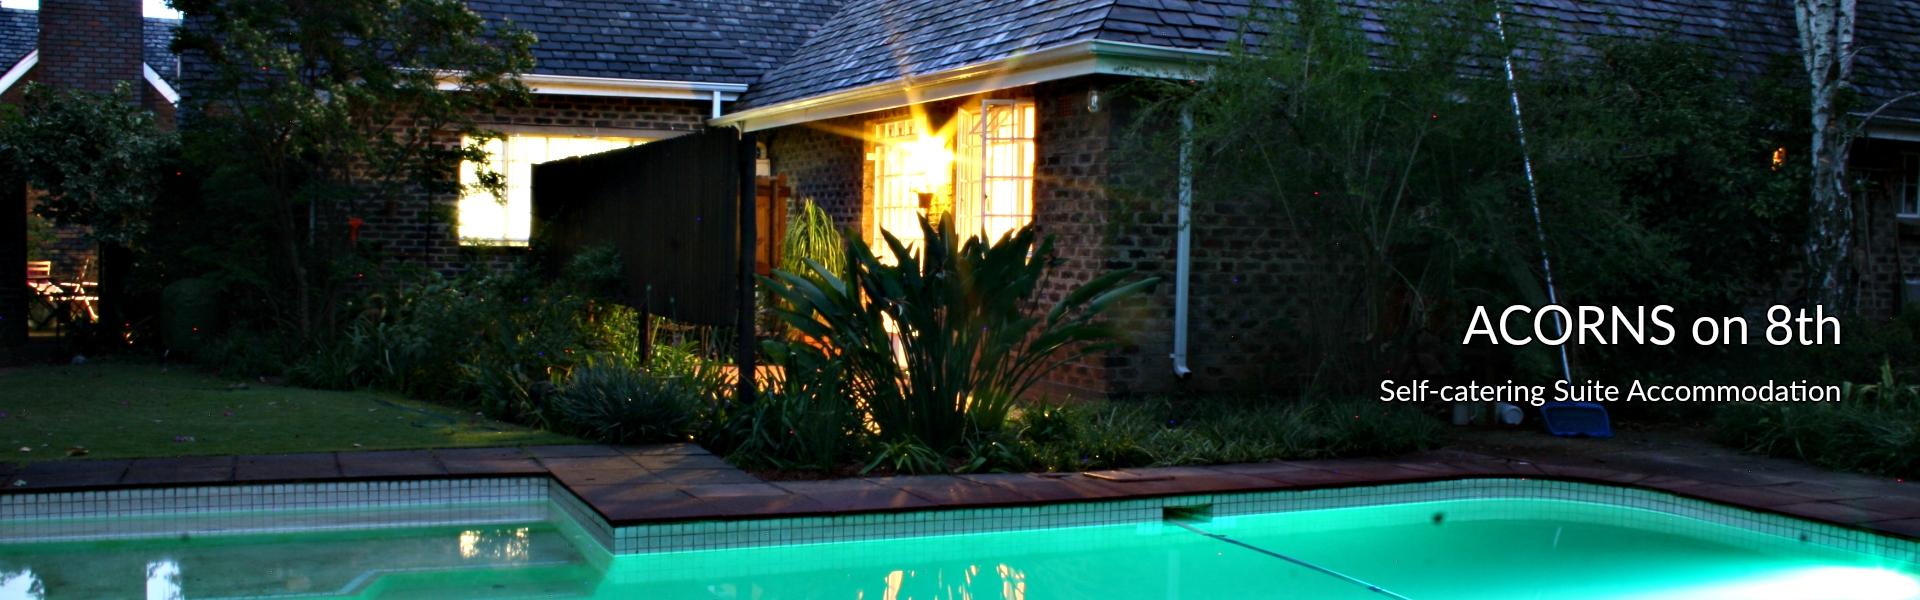 Acorns on 8th self-catering accommodation in Johannesburg